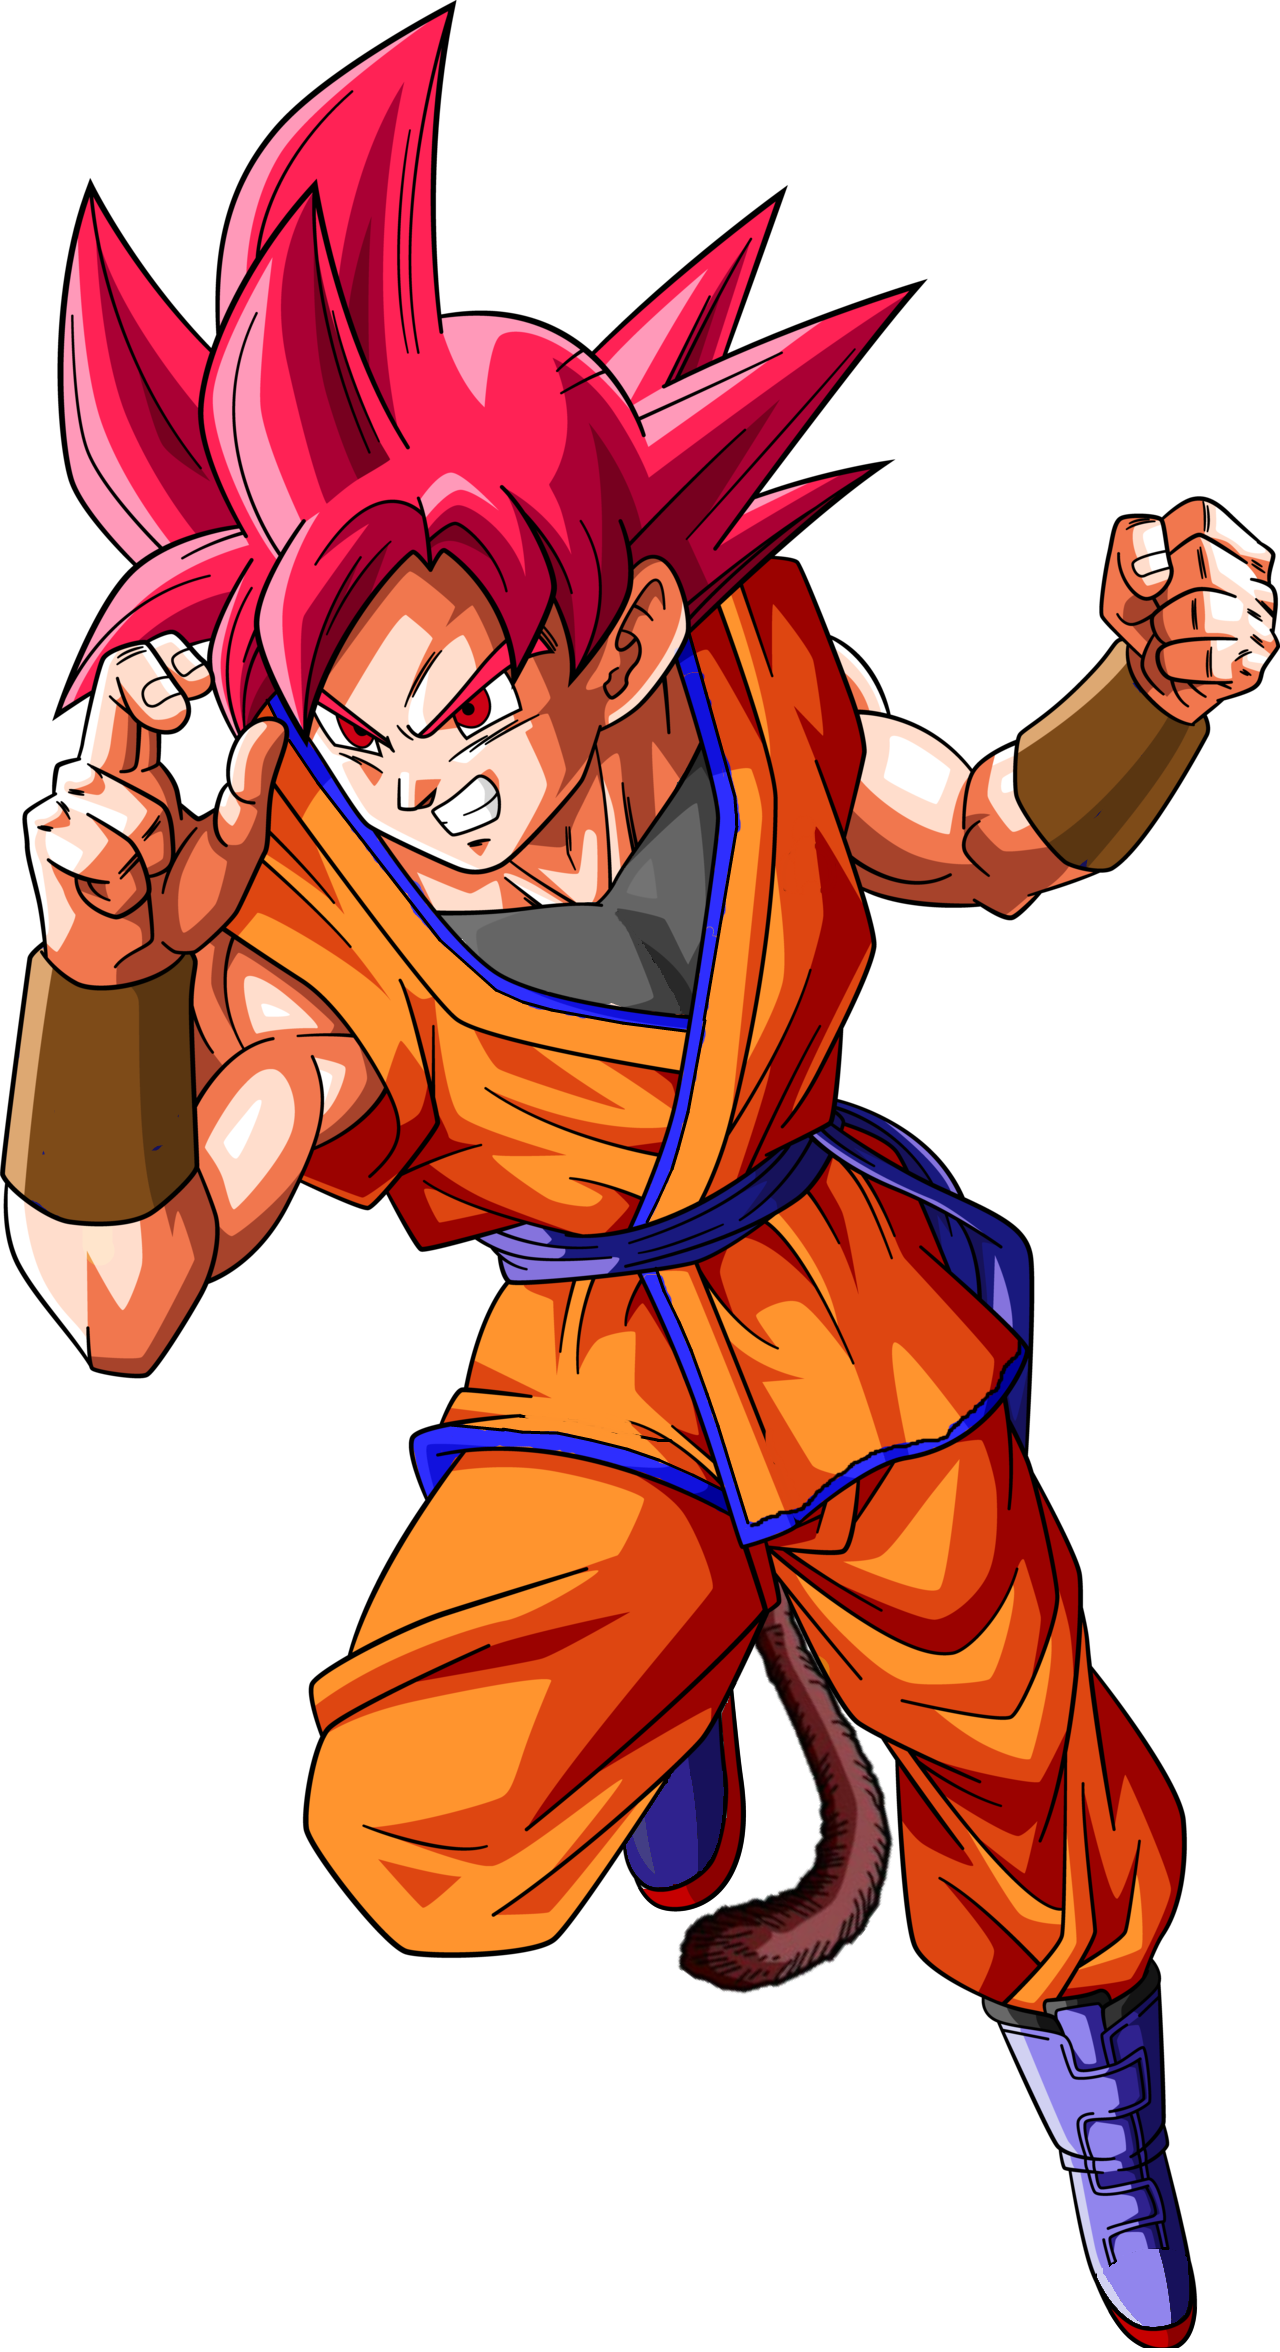 Goku super saiyan god super saiyan png. Image jr dragonball dragon